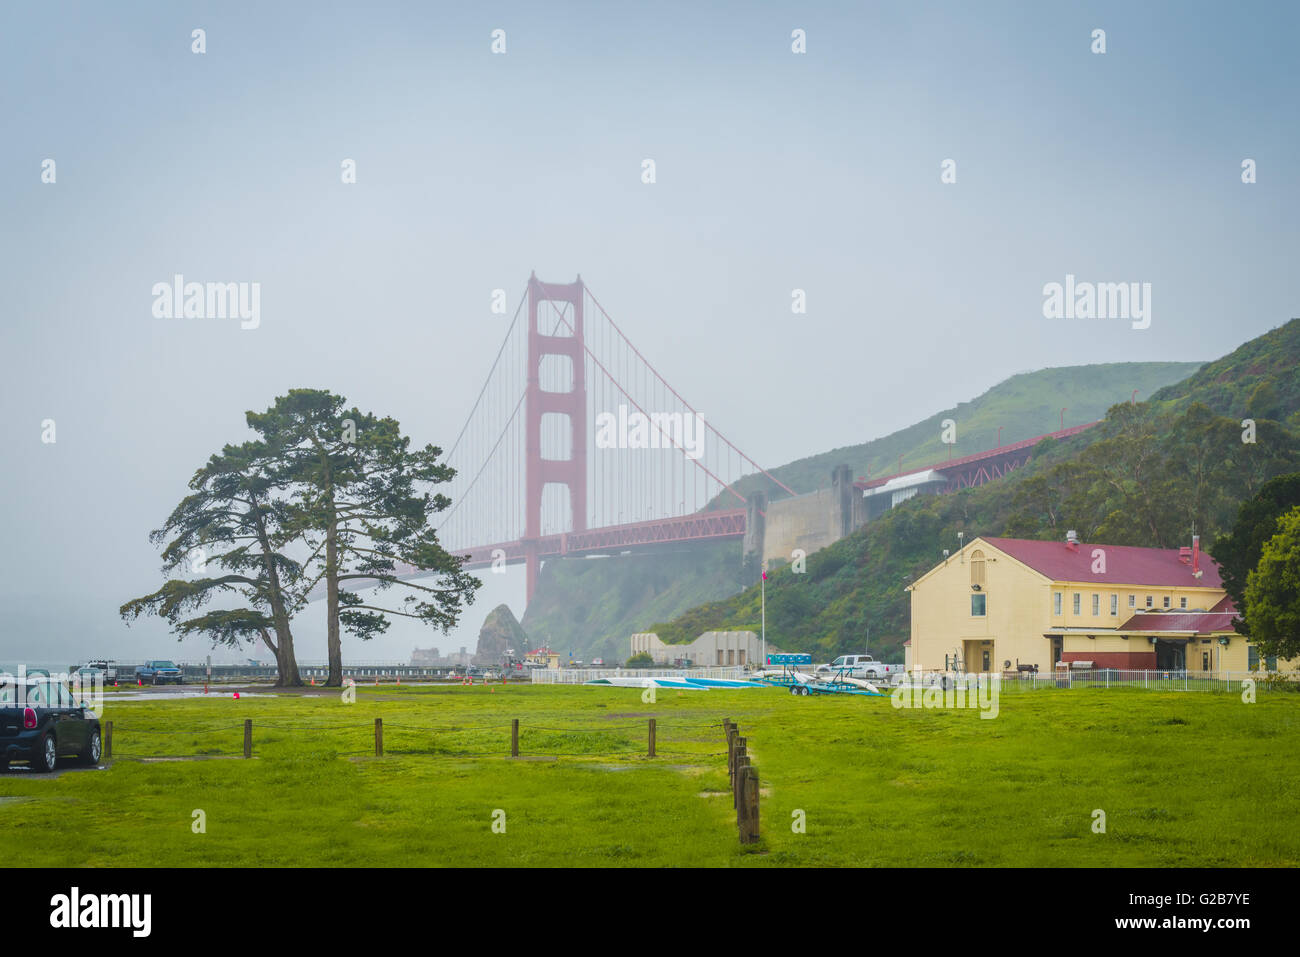 Golden Gate Bridge view of Bay Area Discovery Museum - Stock Image